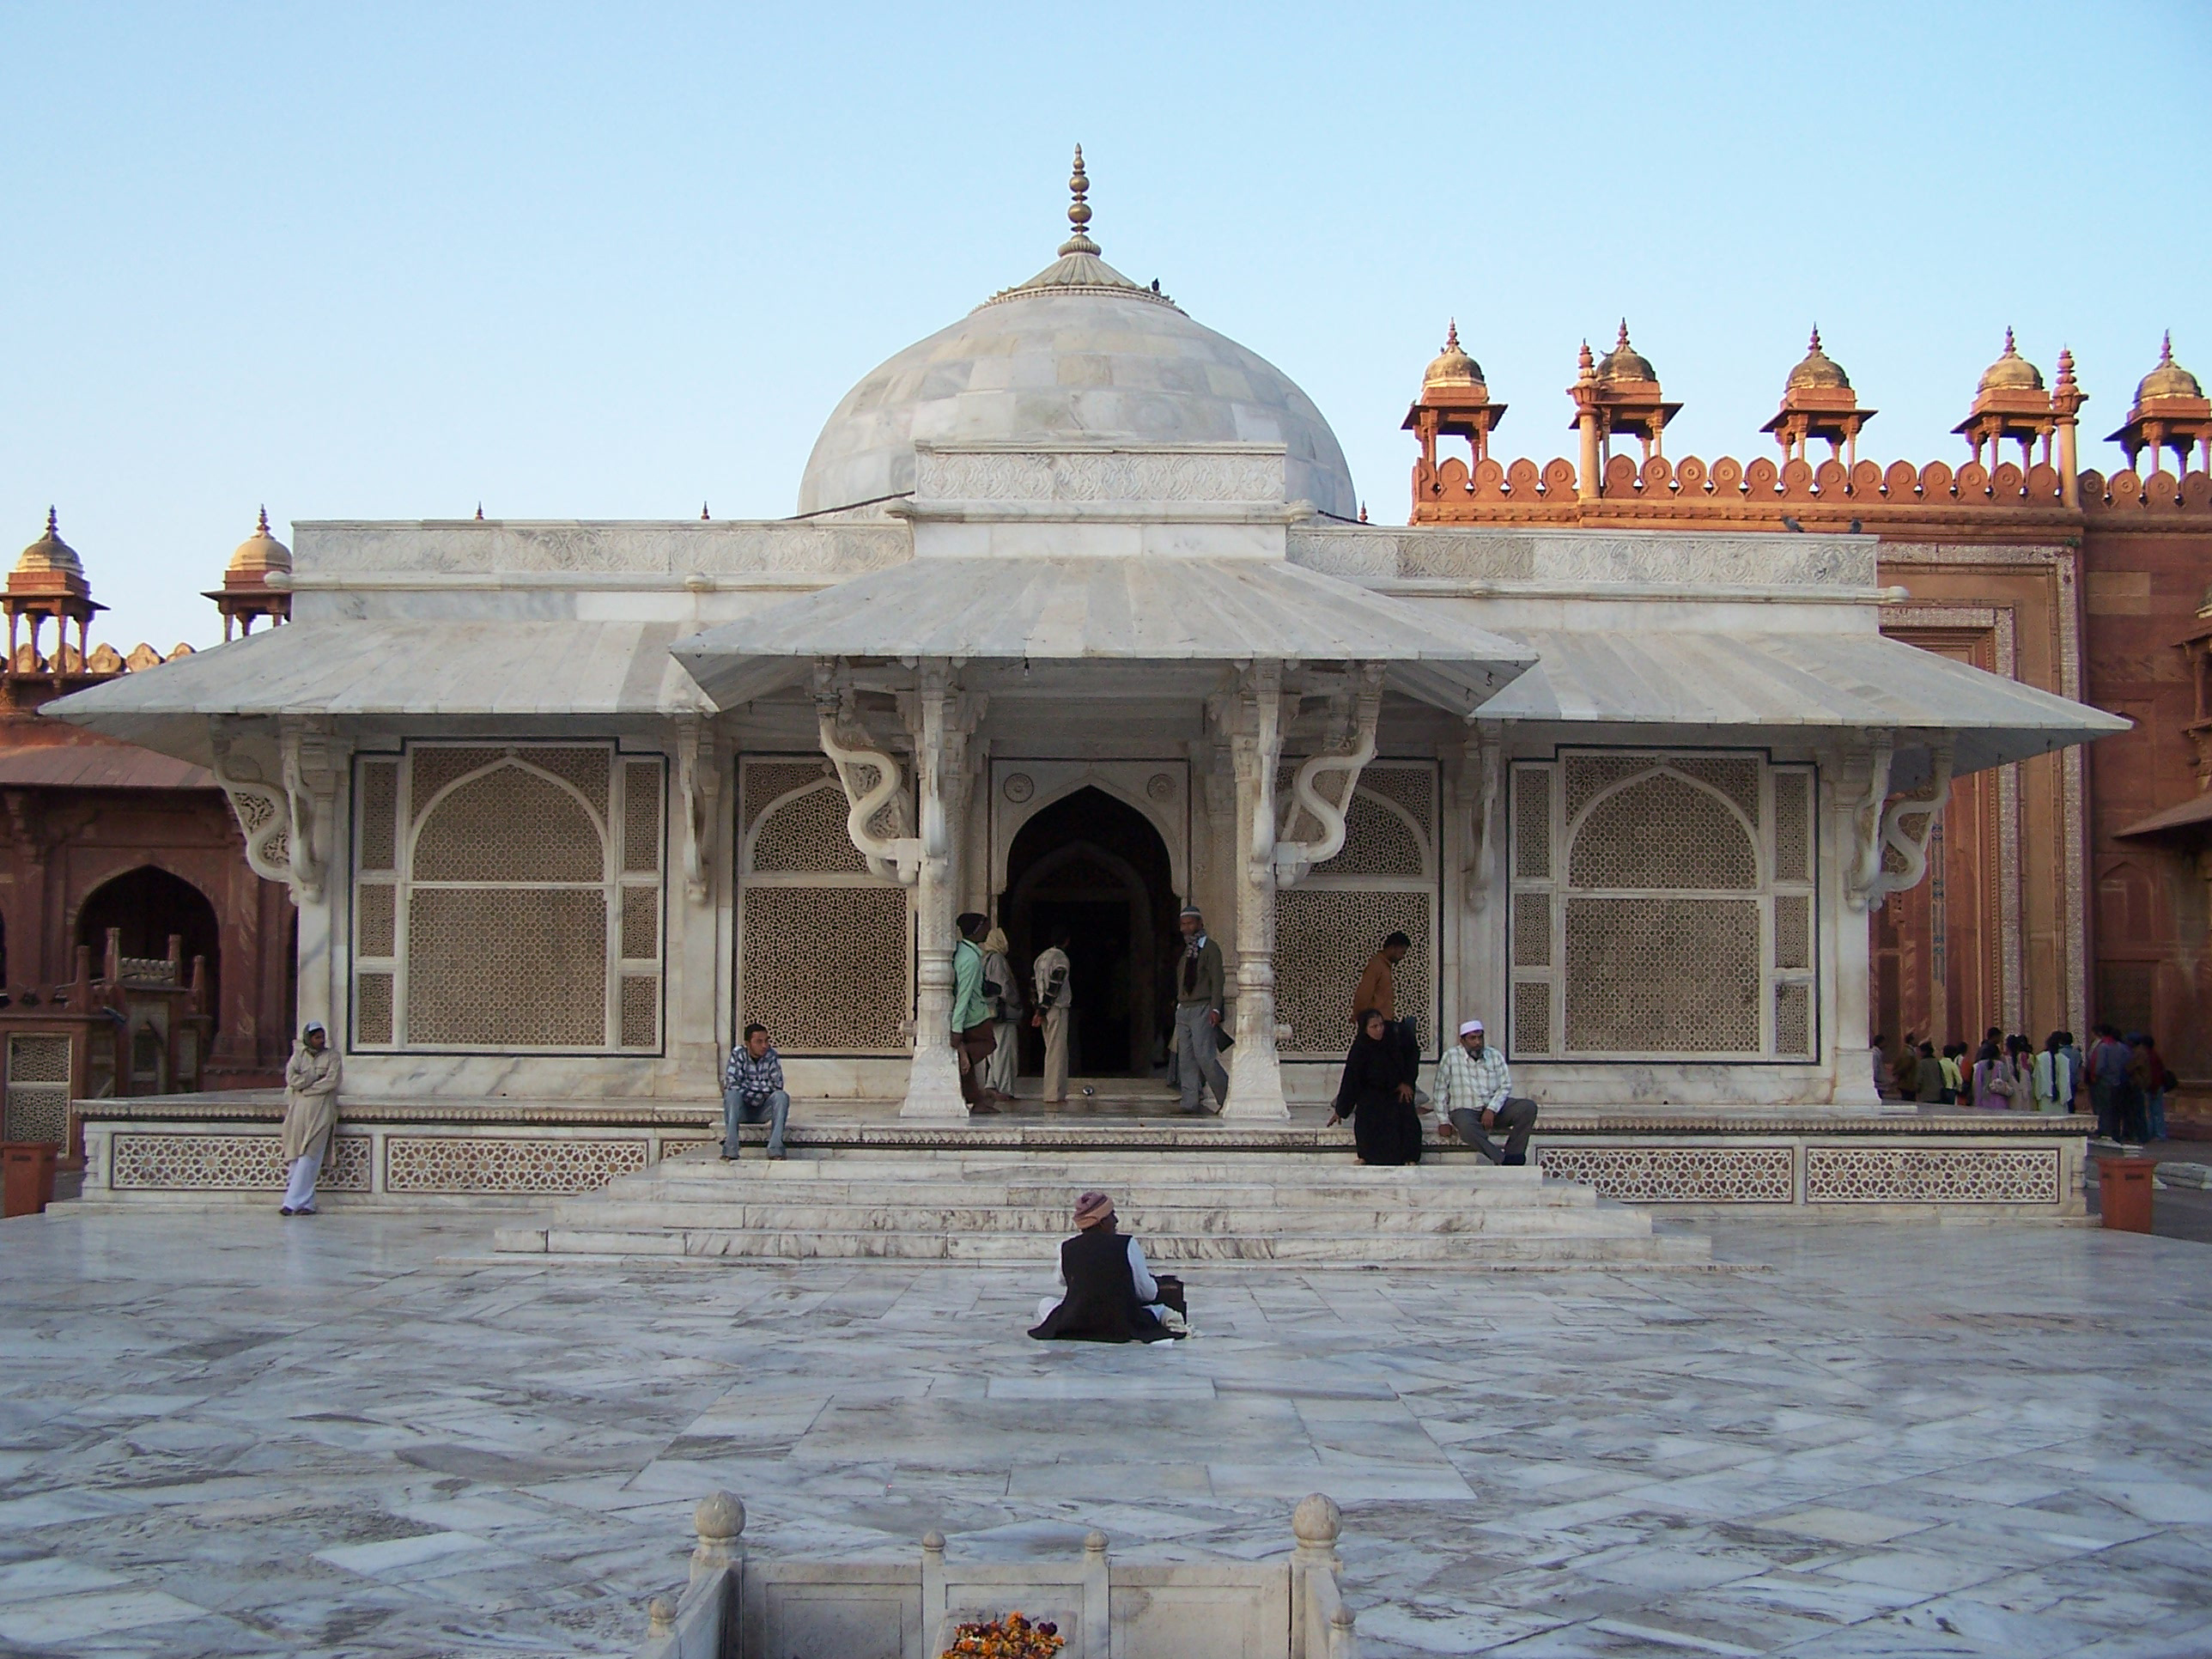 chisti dargah Visit dargah of khwaja muinuddin chisti in ajmer is one of the top activities to do in city get complete information including location, timetable, entry fee.